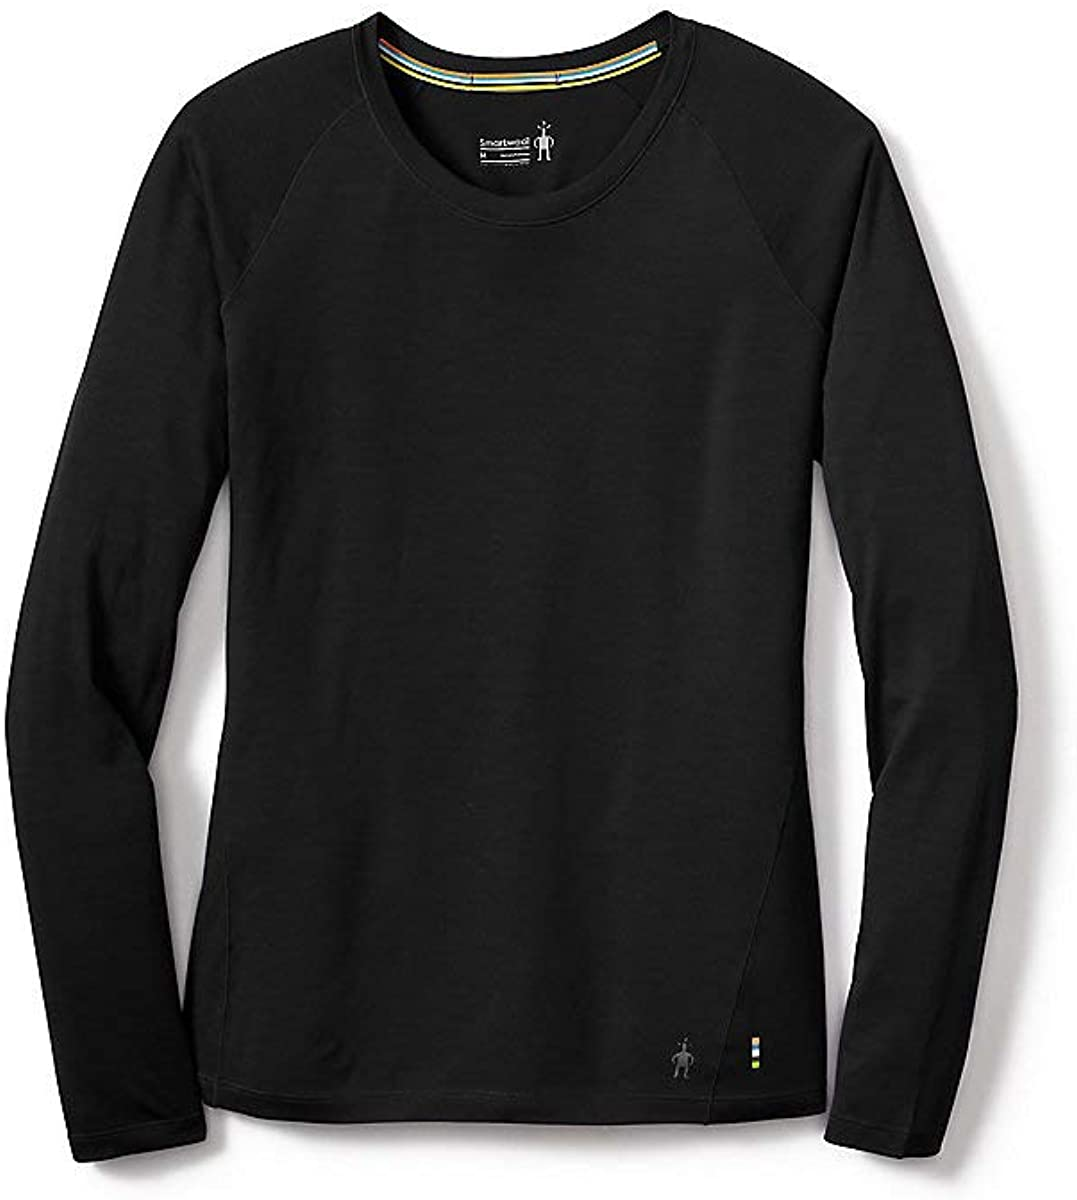 Women's Smartwool Merino 150 Base Layer Long Sleeve in Black from the side view